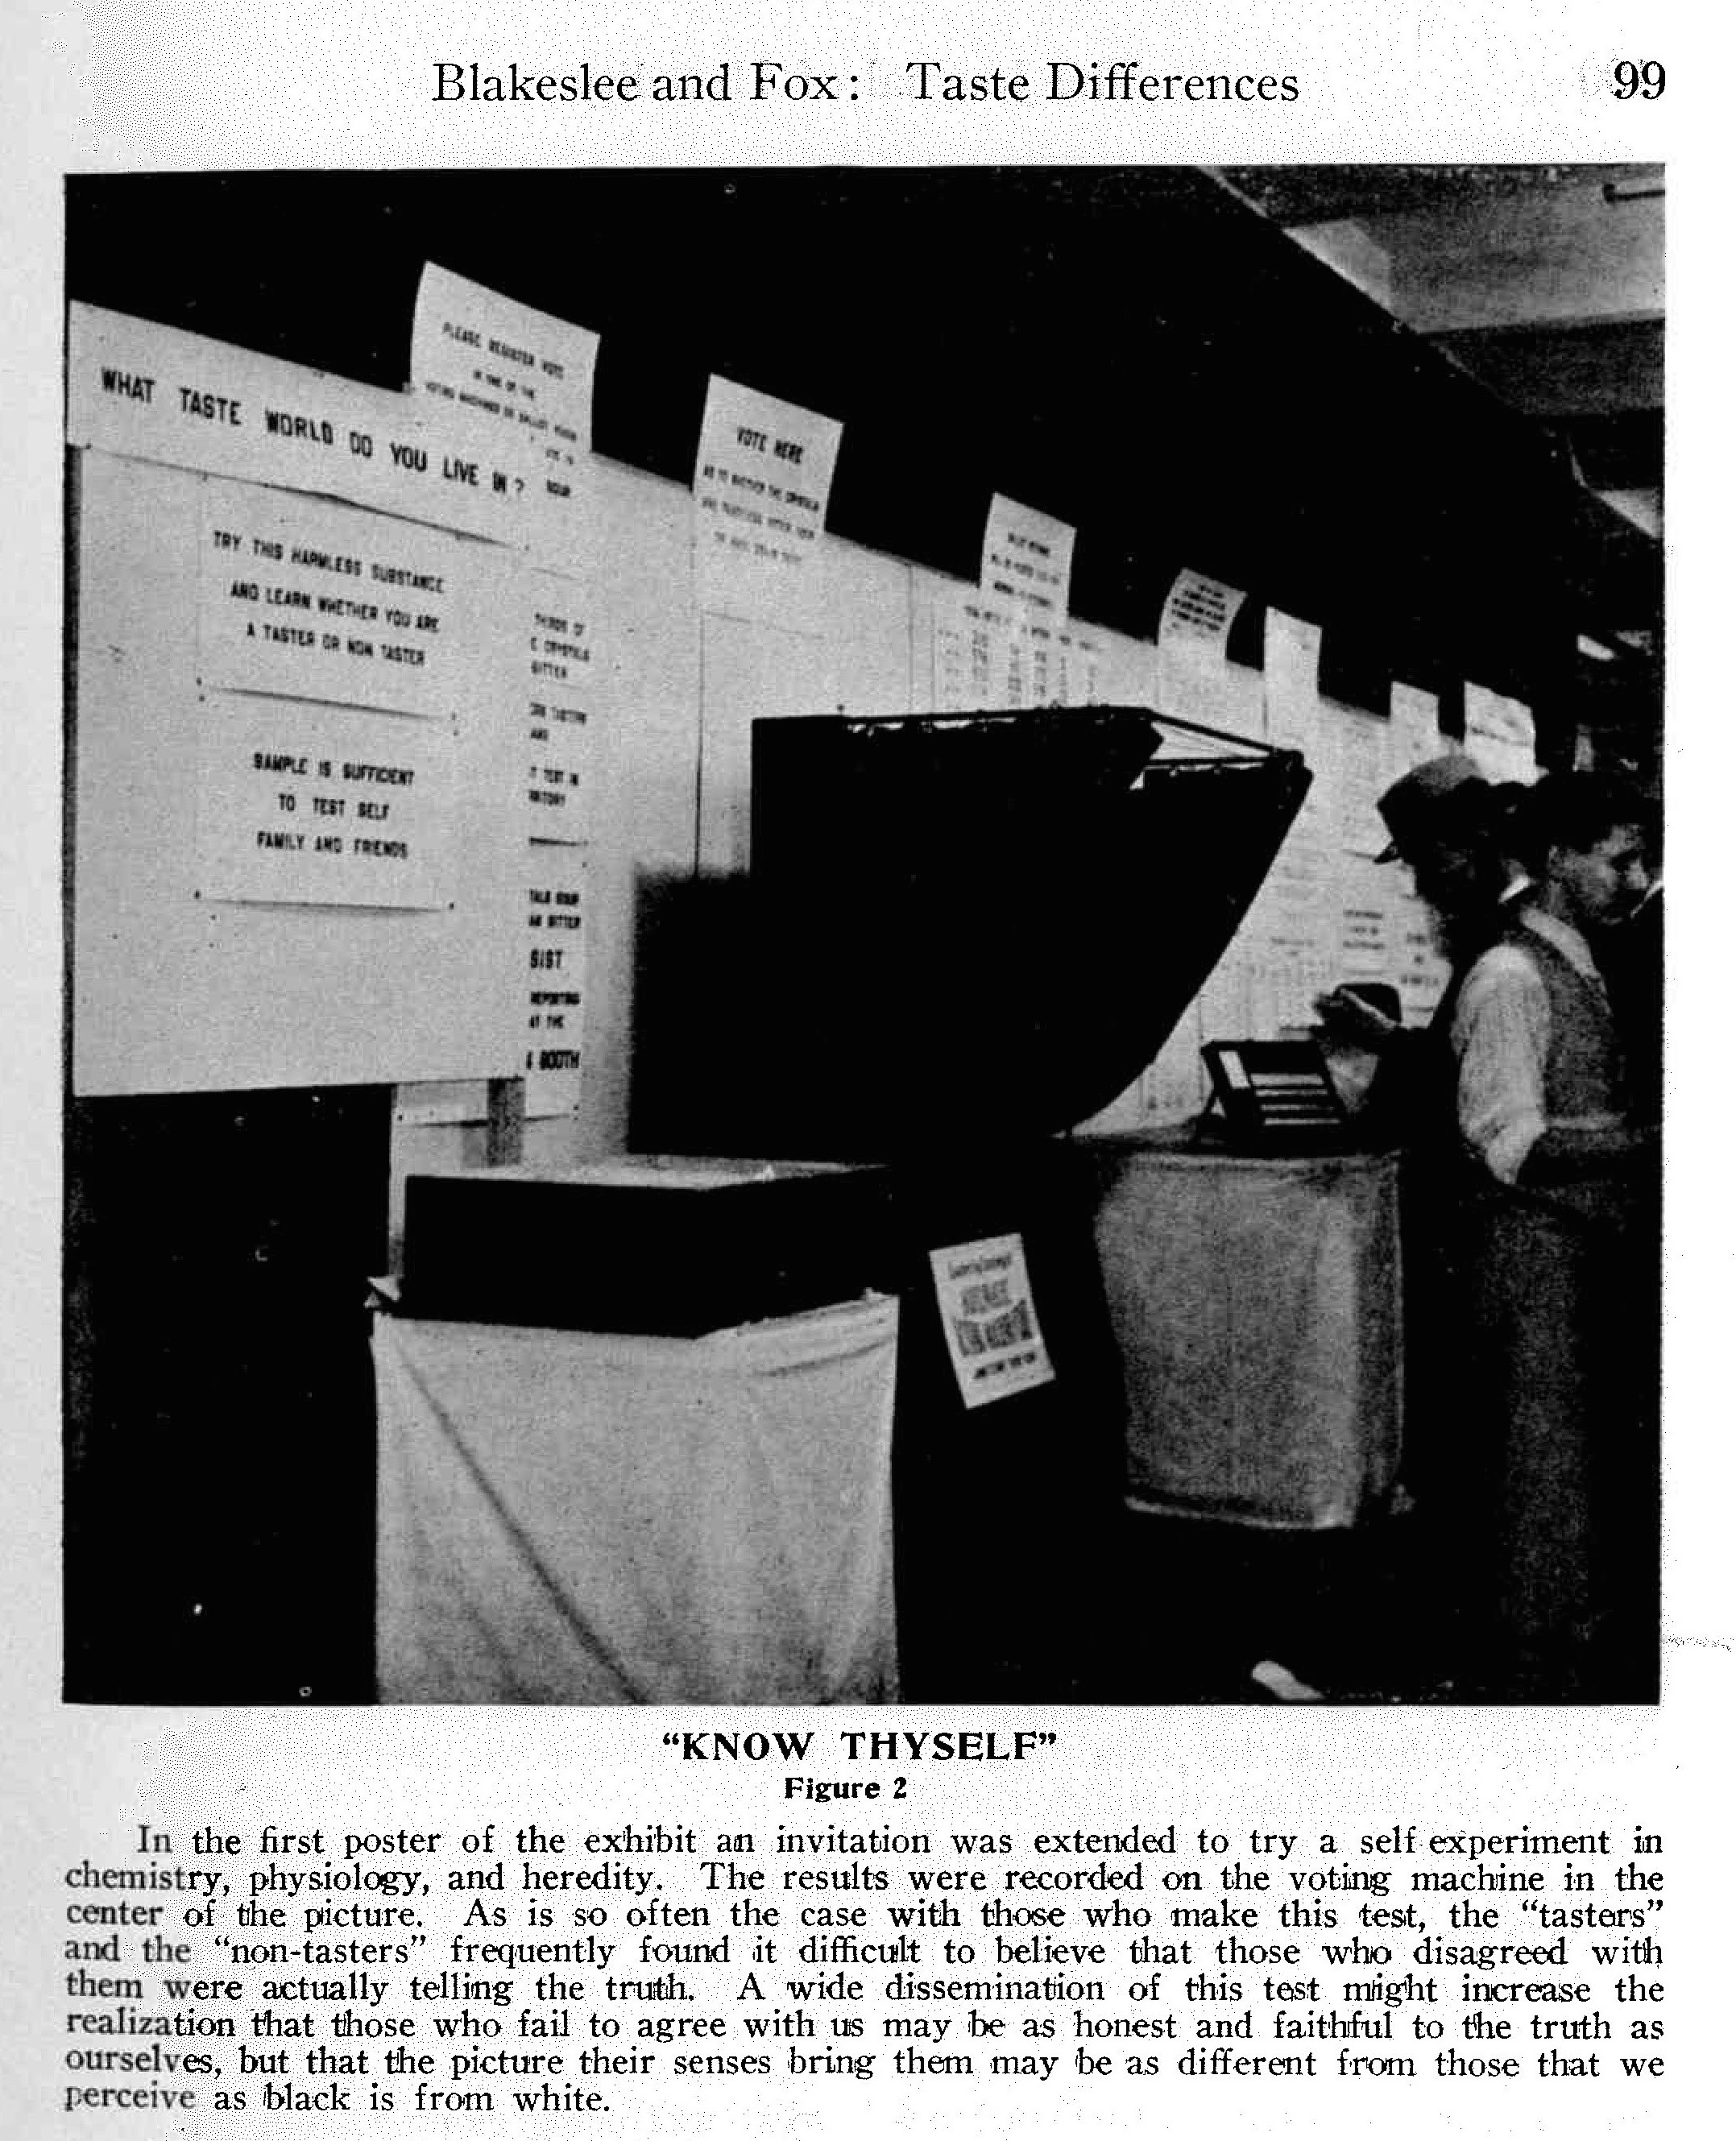 """What Taste World Do You Live In?"" ""Know Thyself"" ""Vote Here"" ... In the Taste Exhibit at the 1931 New Orleans meeting of the AAAS, messages of self-knowledge, scientific participation, and civic engagement intermingled. Image from the March 1932 Journal of Heredity."